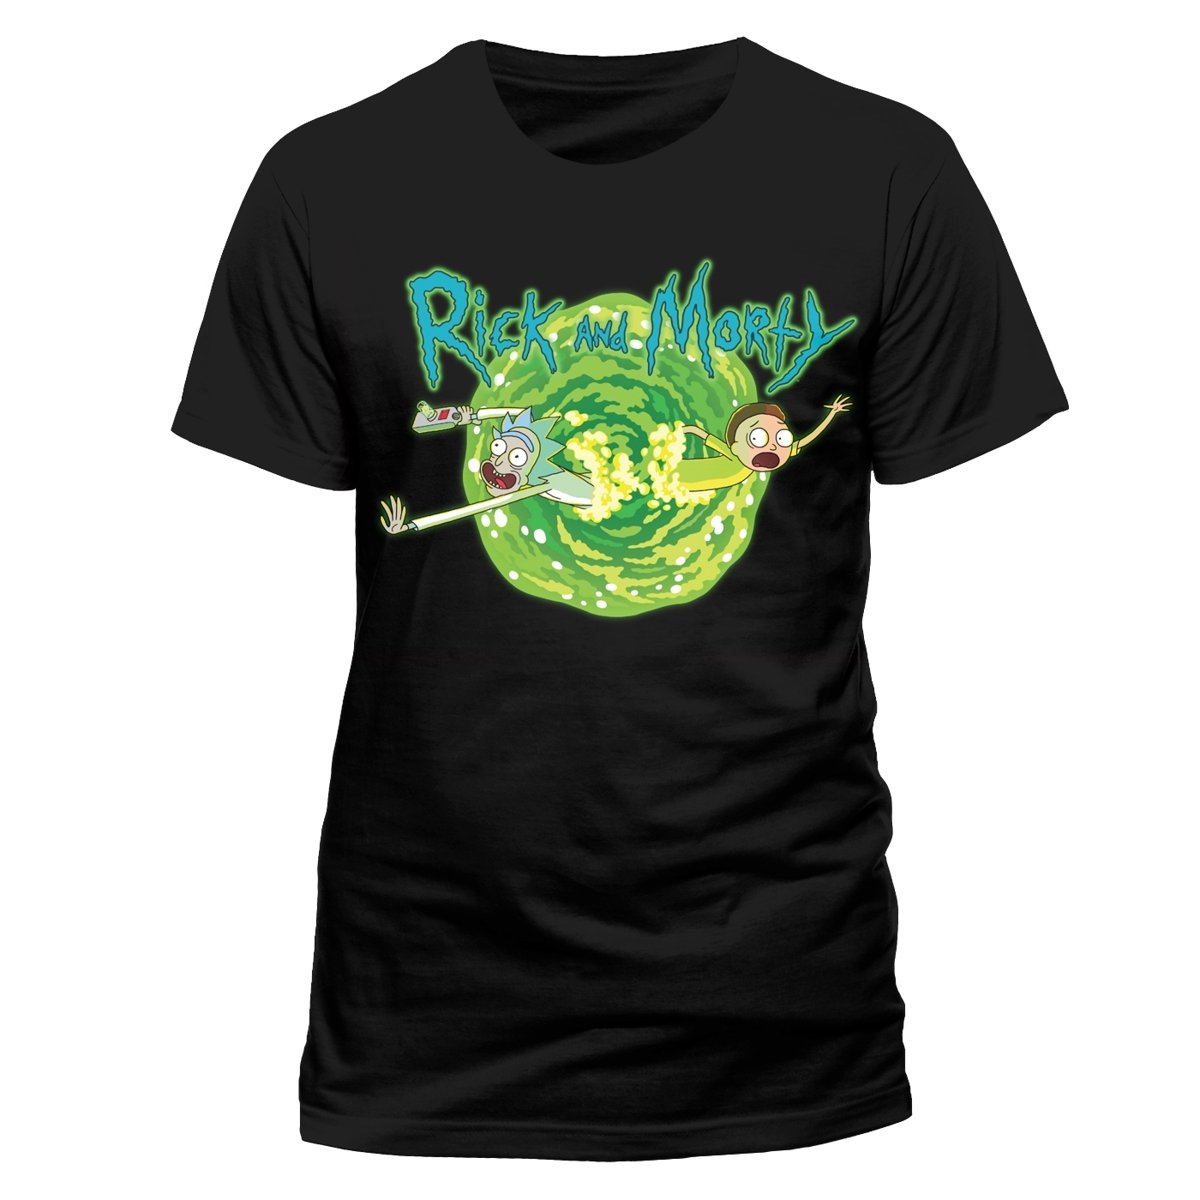 Rick and Morty Official Licensed Men's Portal Print Black T-Shirt | Sizes S-XXL